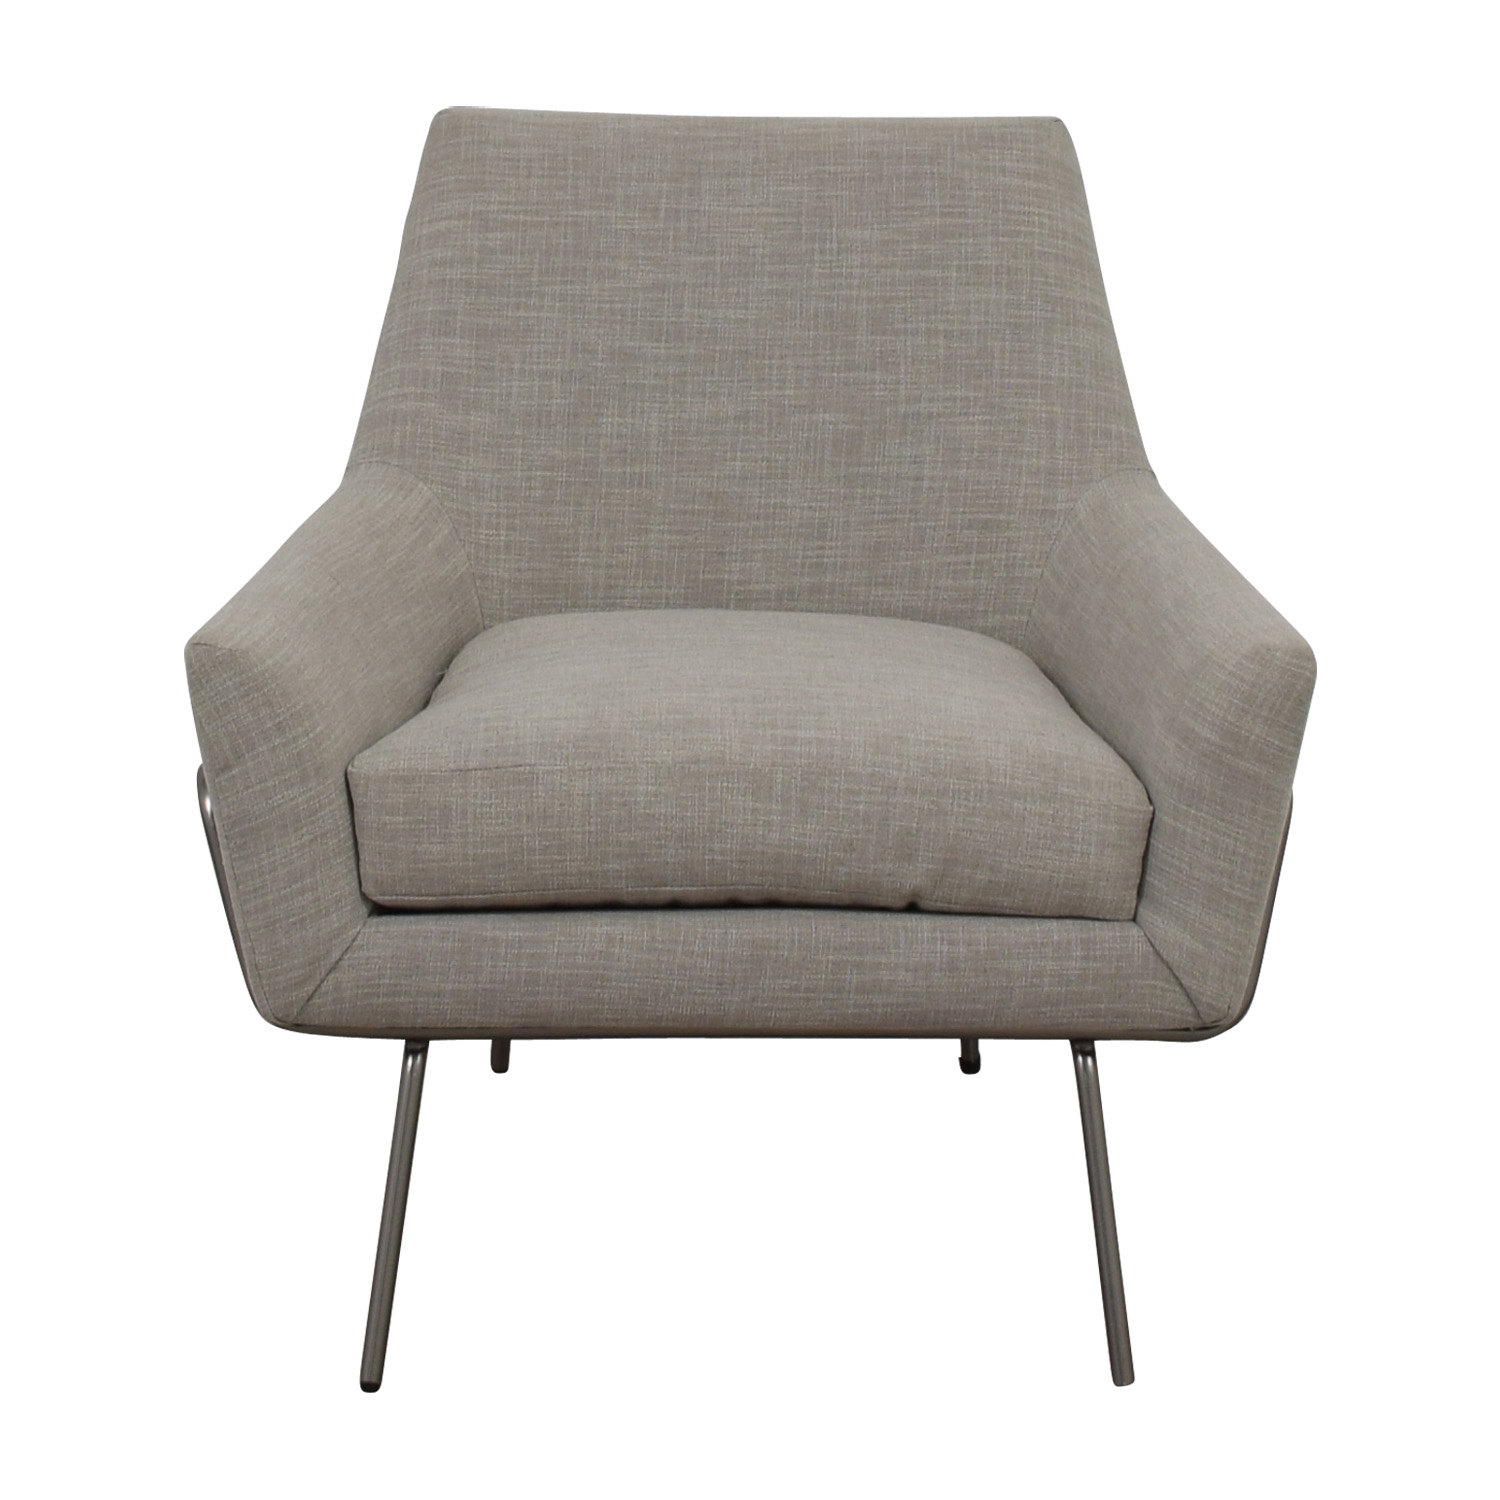 West Elm Chairs: West Elm West Elm Lucas Grey Wire Base Chair